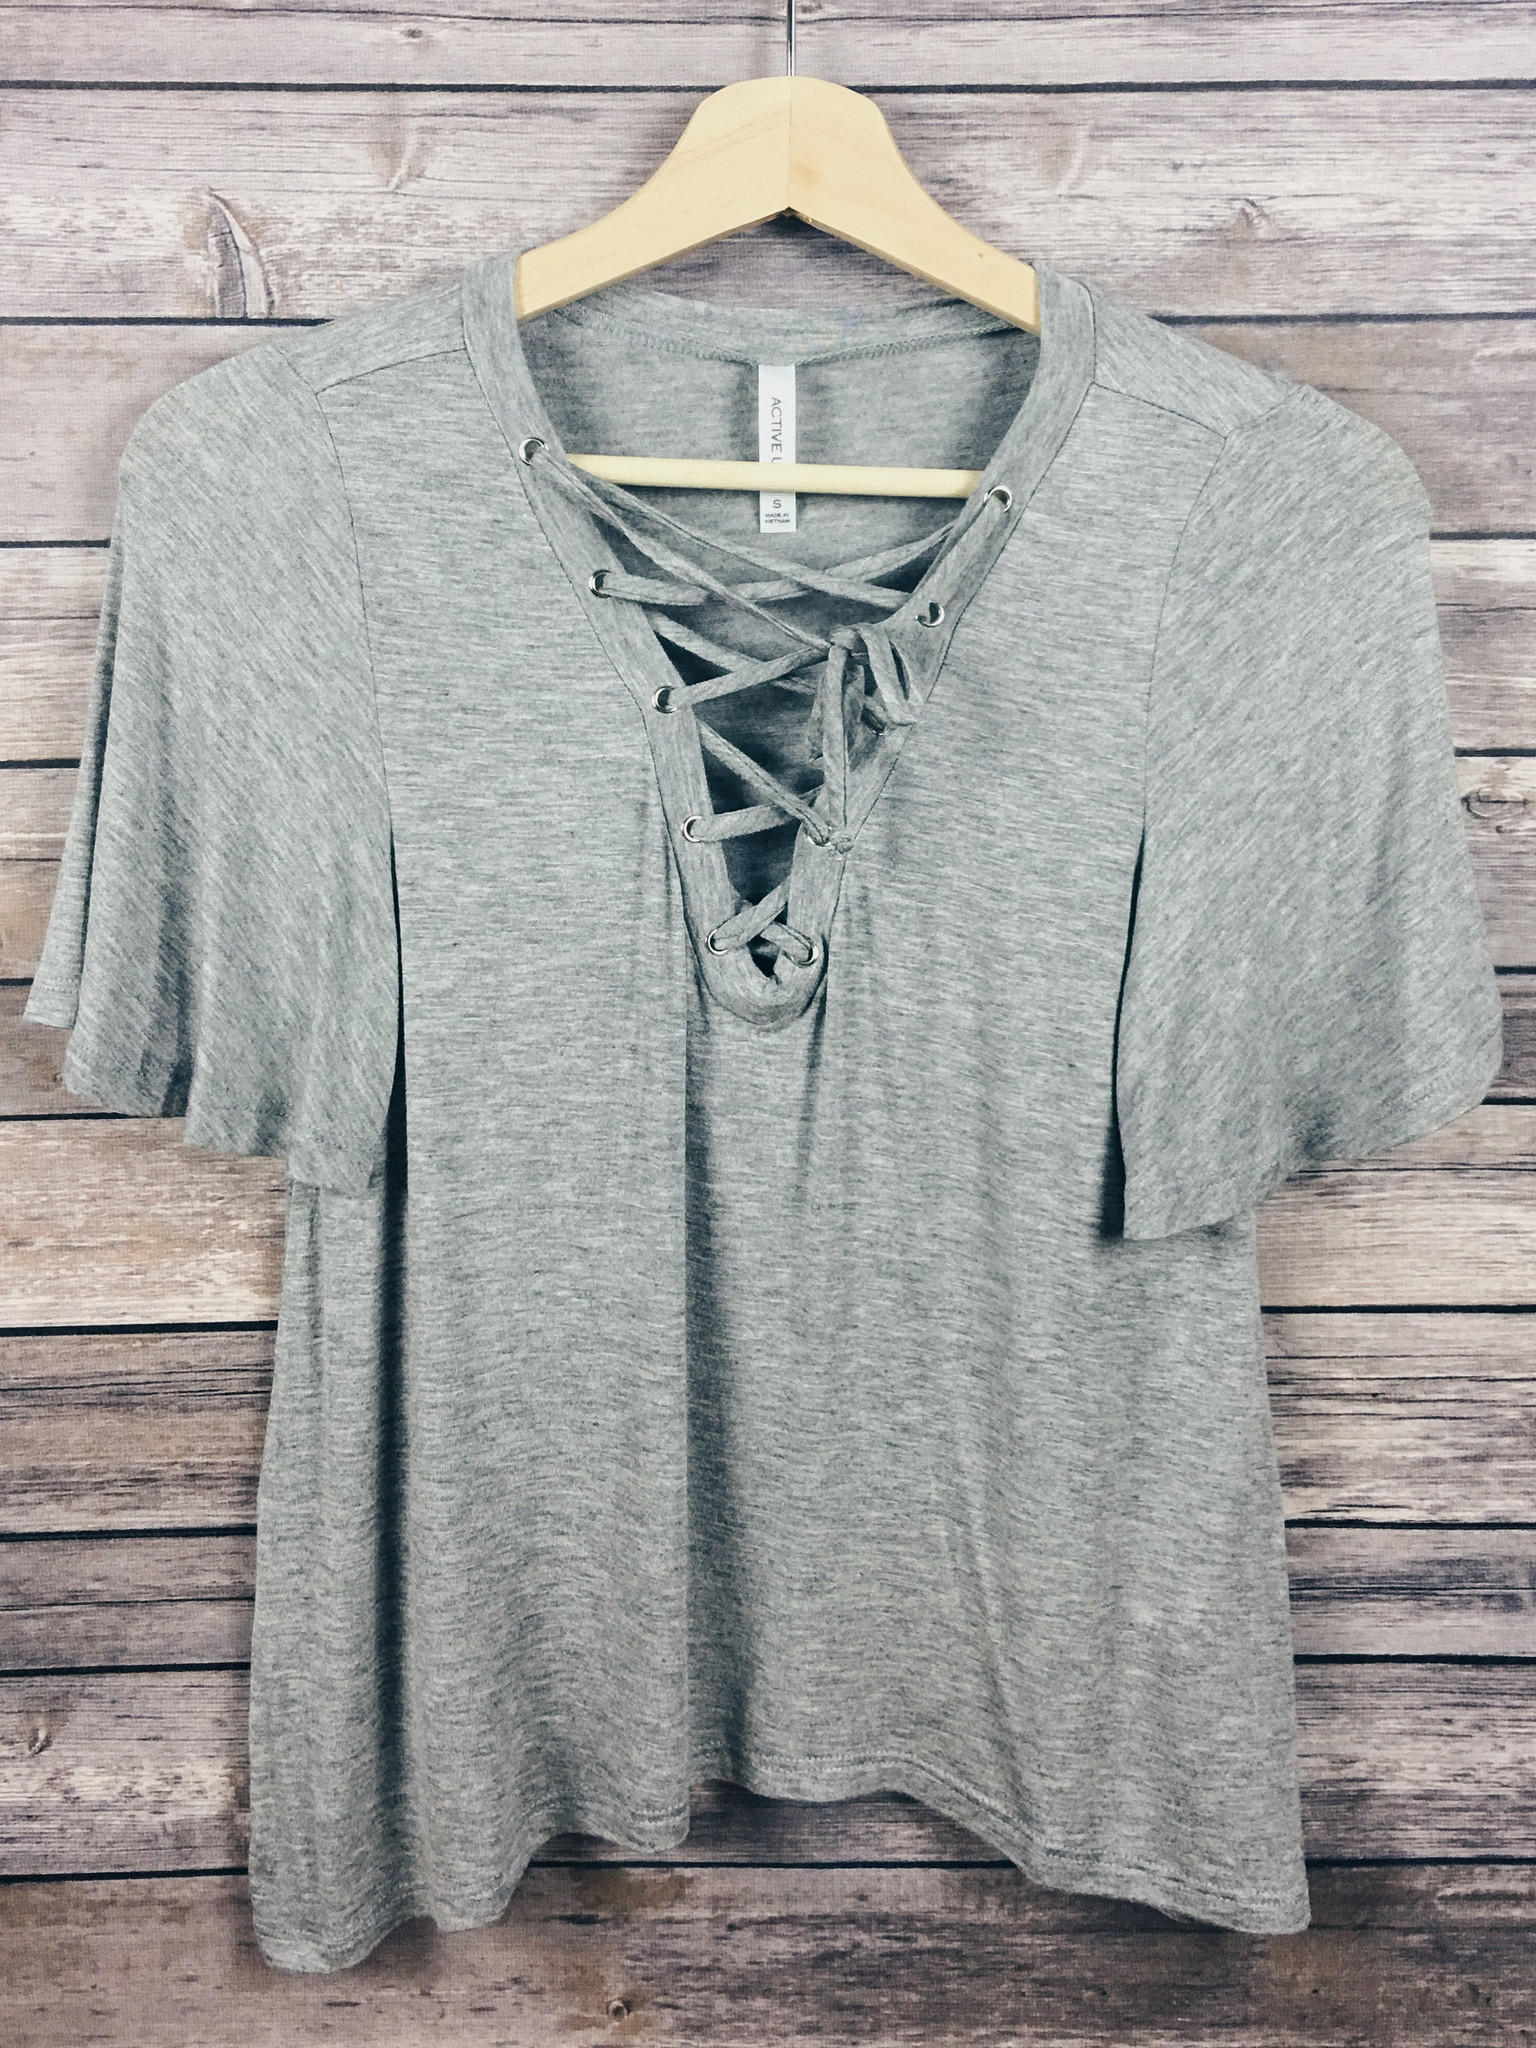 914d9a7379 Brooklyn Lace Up Top (Heather Grey) from Shop Devi